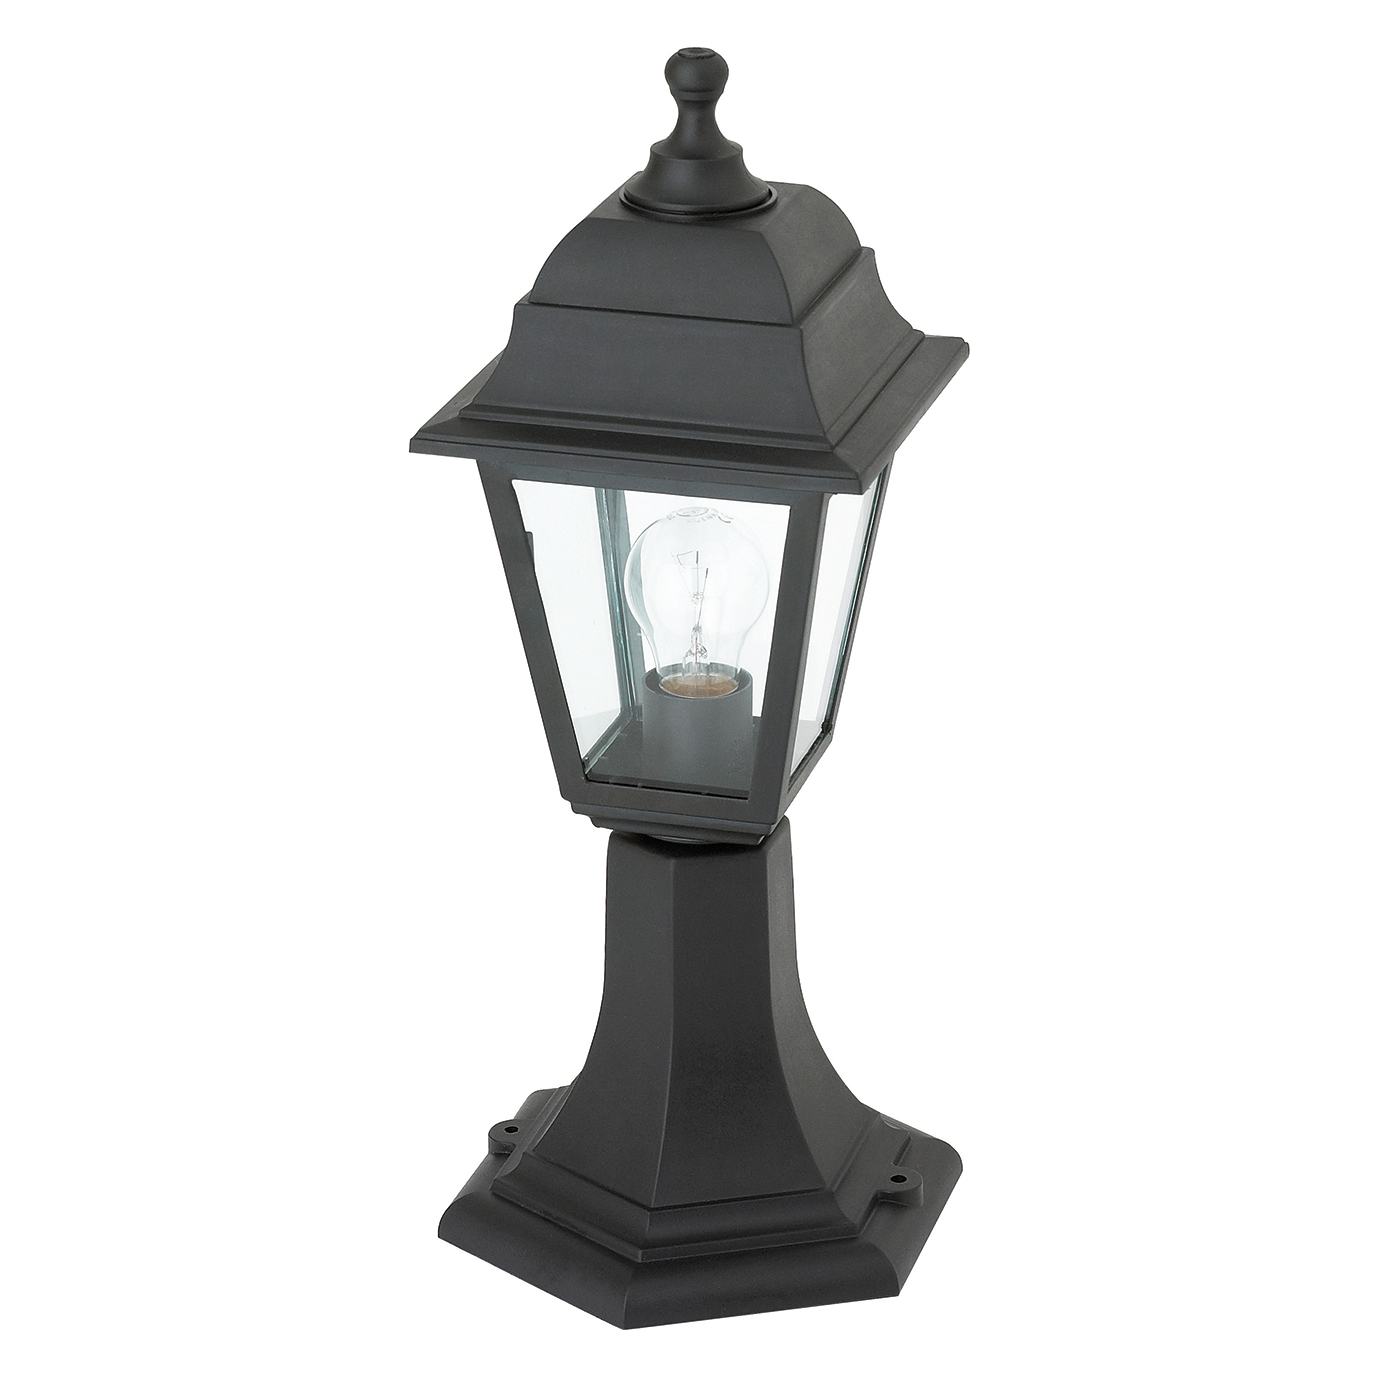 Endon EL-40043 Post Lantern GLS ES 60W